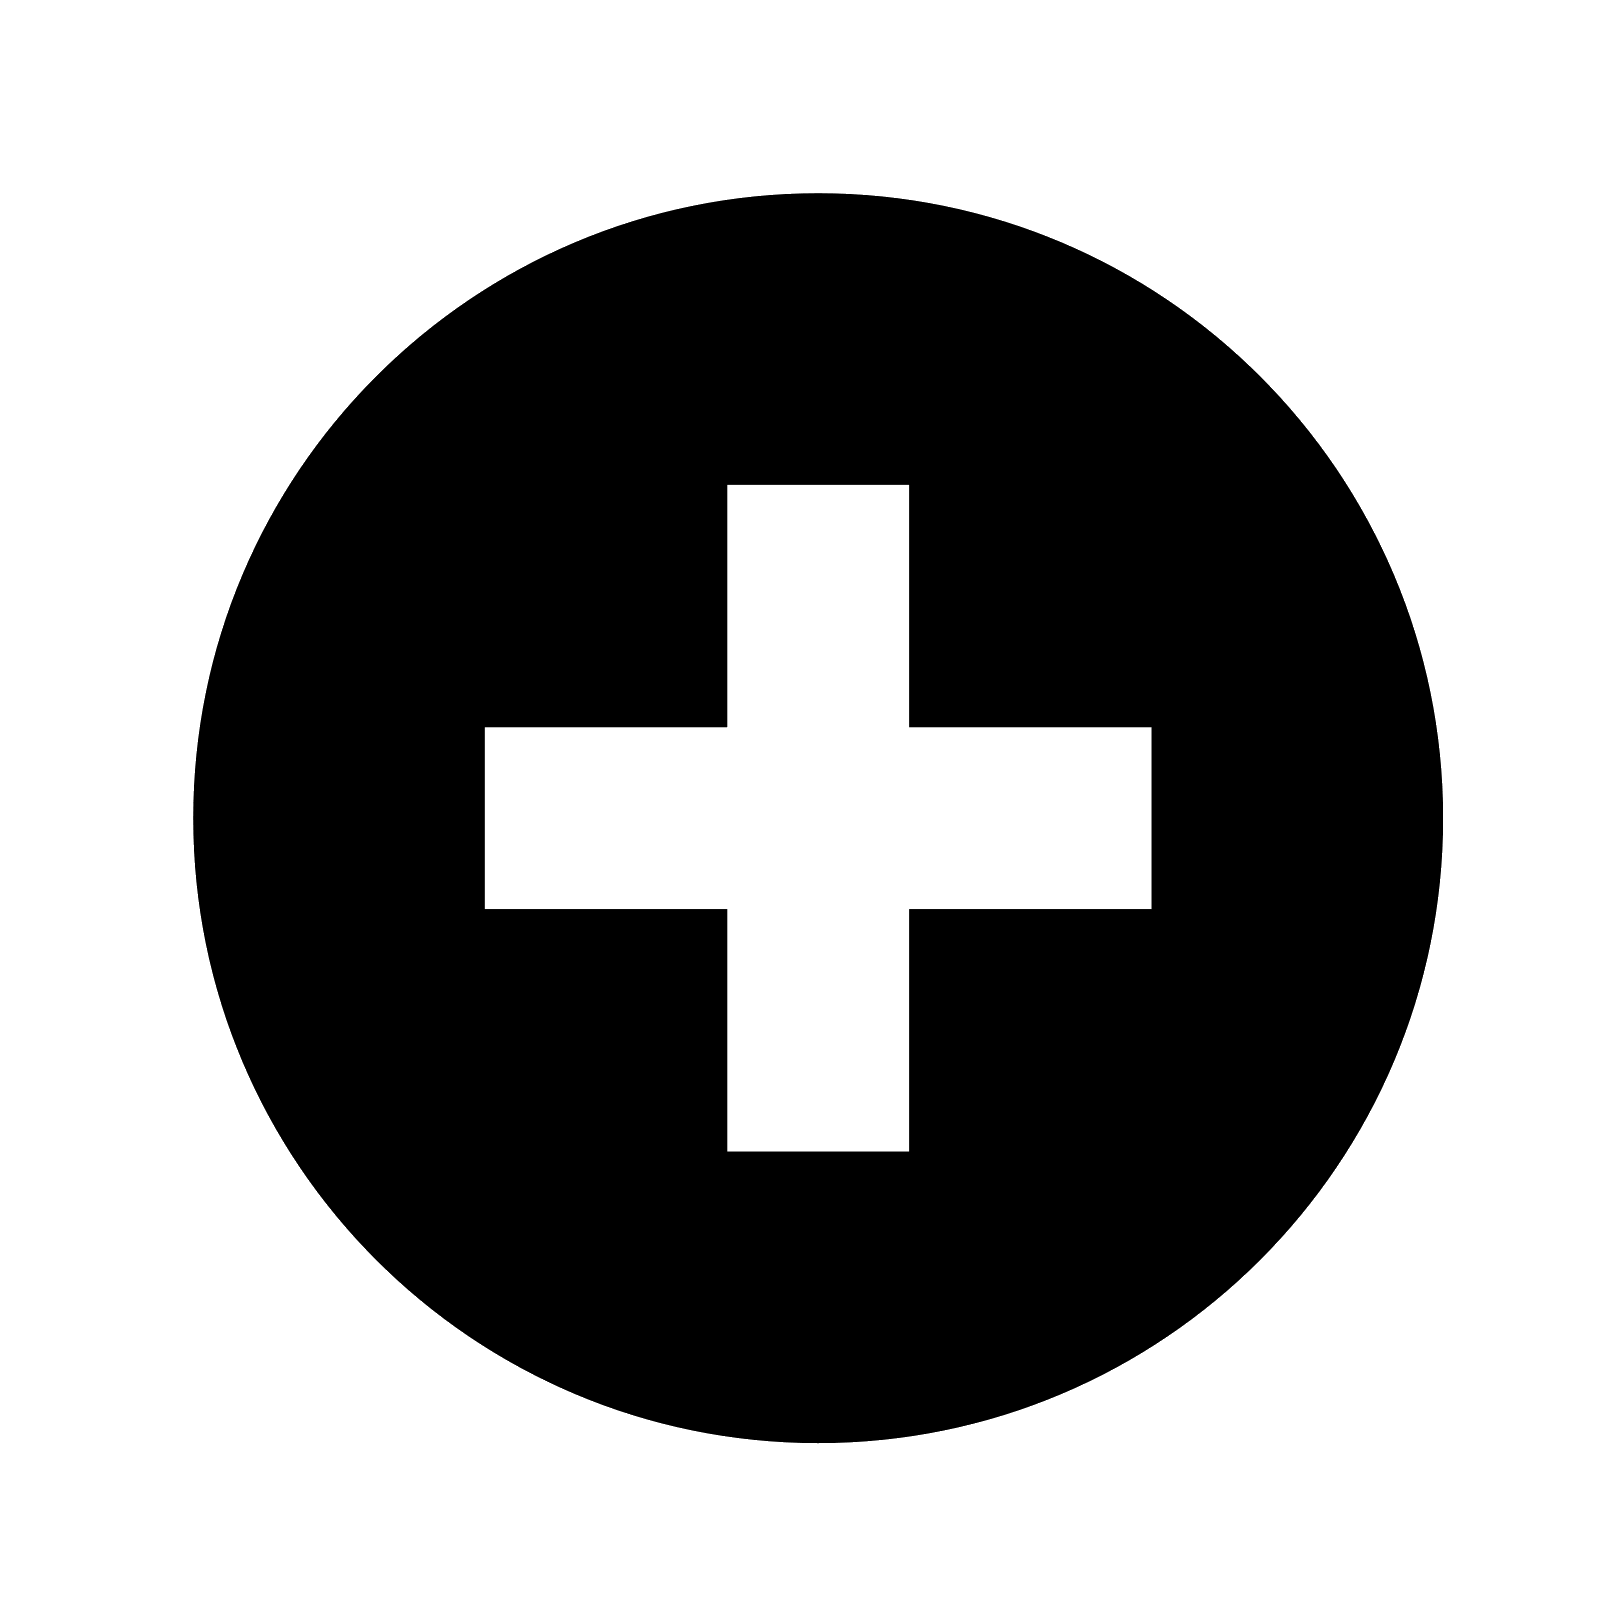 plus symbol black png